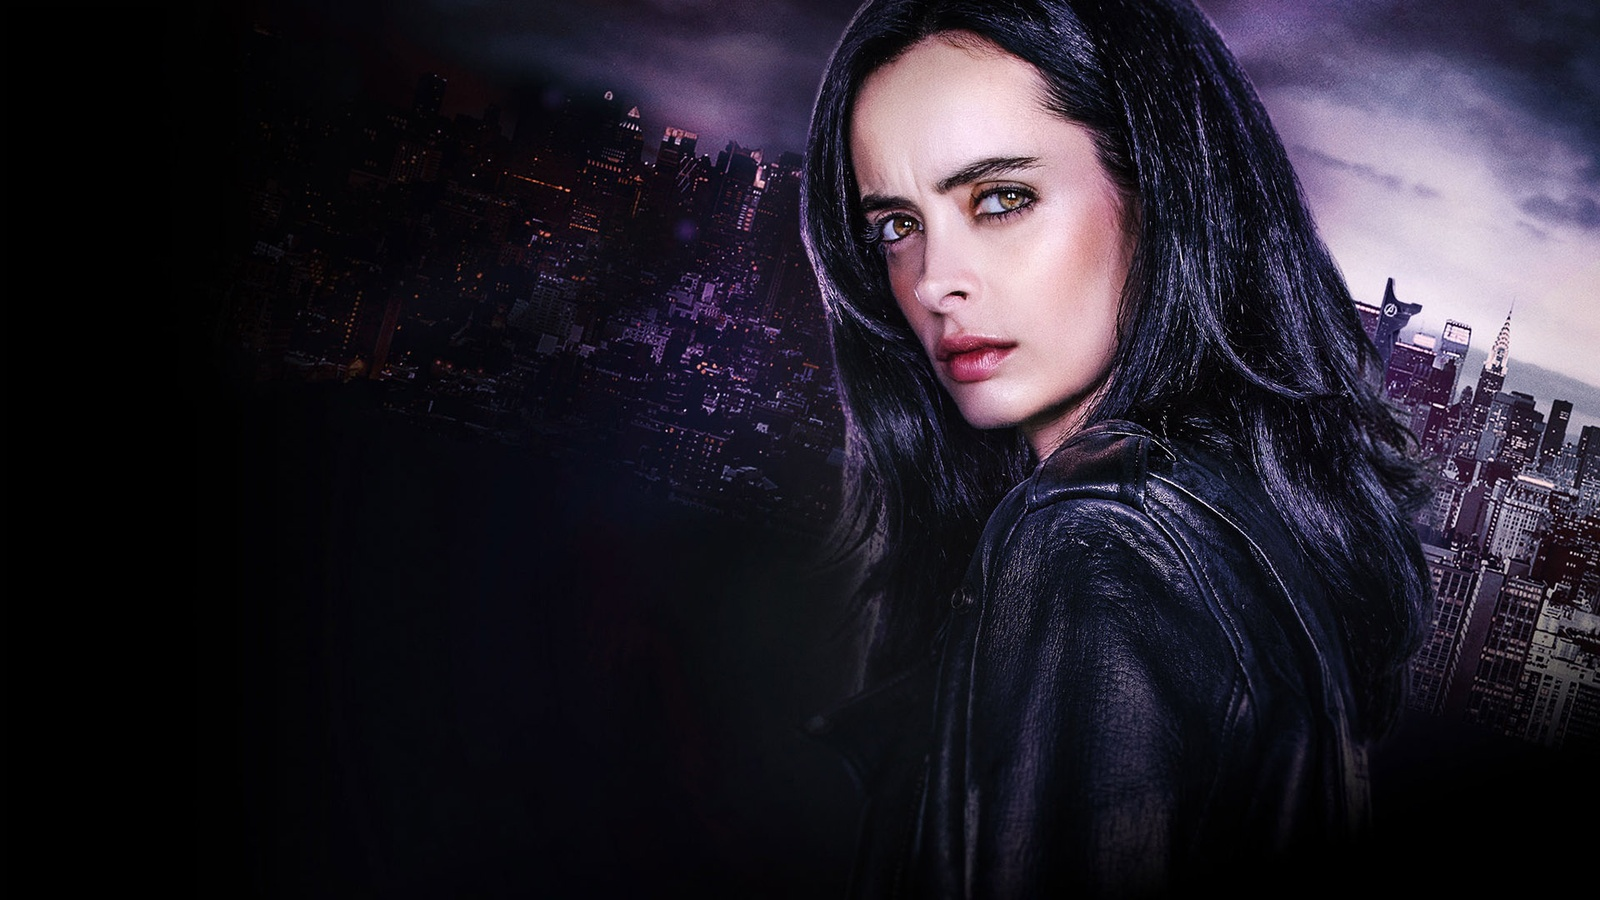 Джессика Джонс / Jessica Jones background